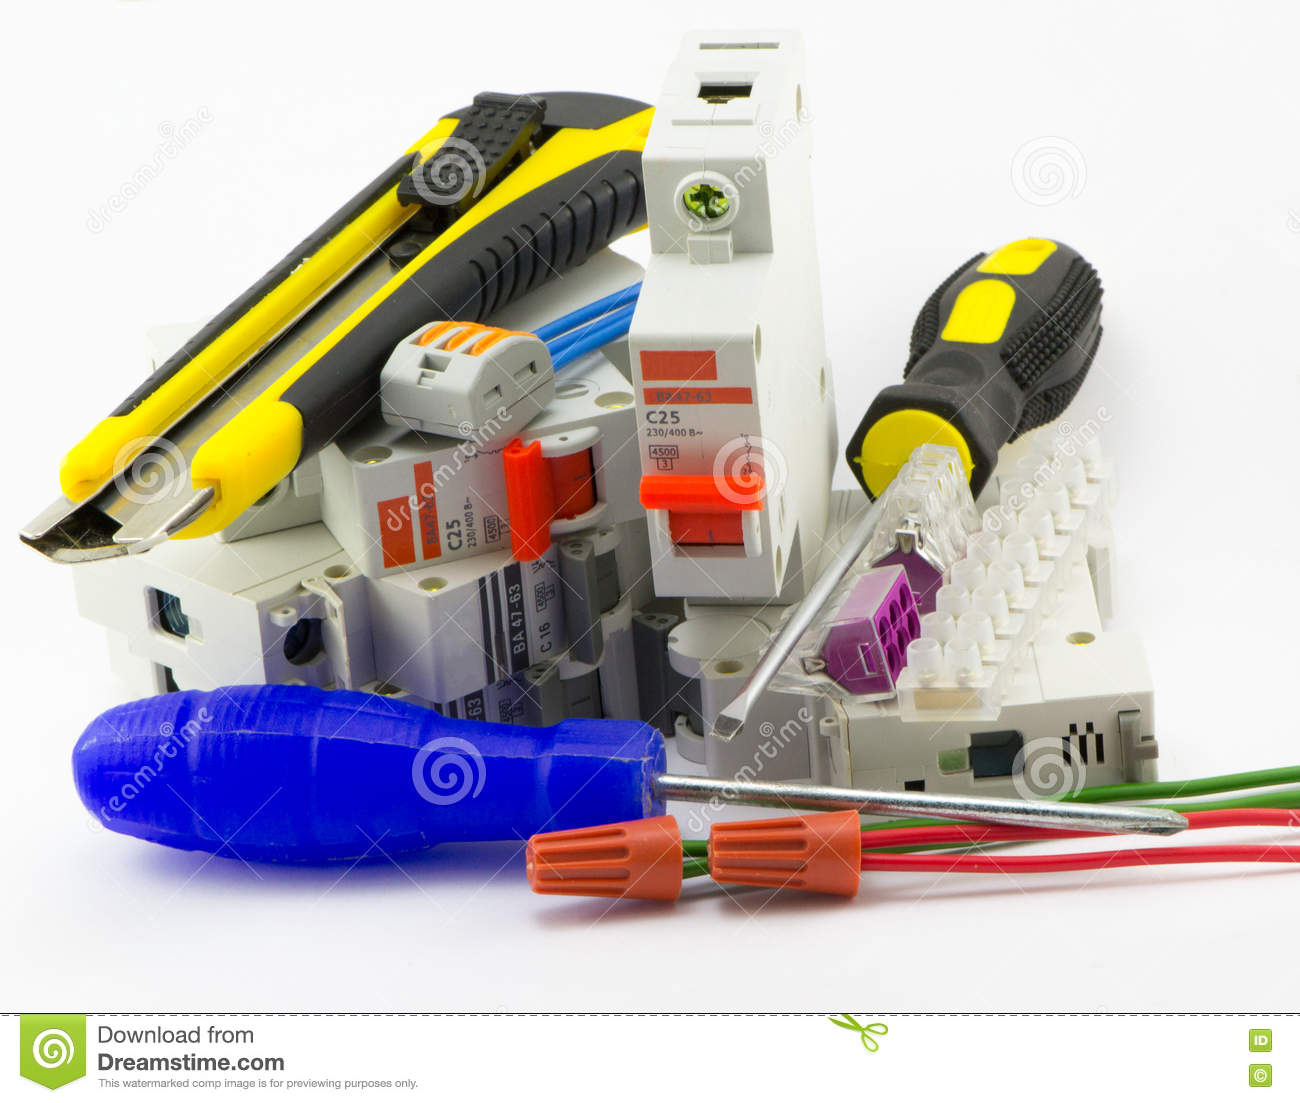 Tools and supplies electrician